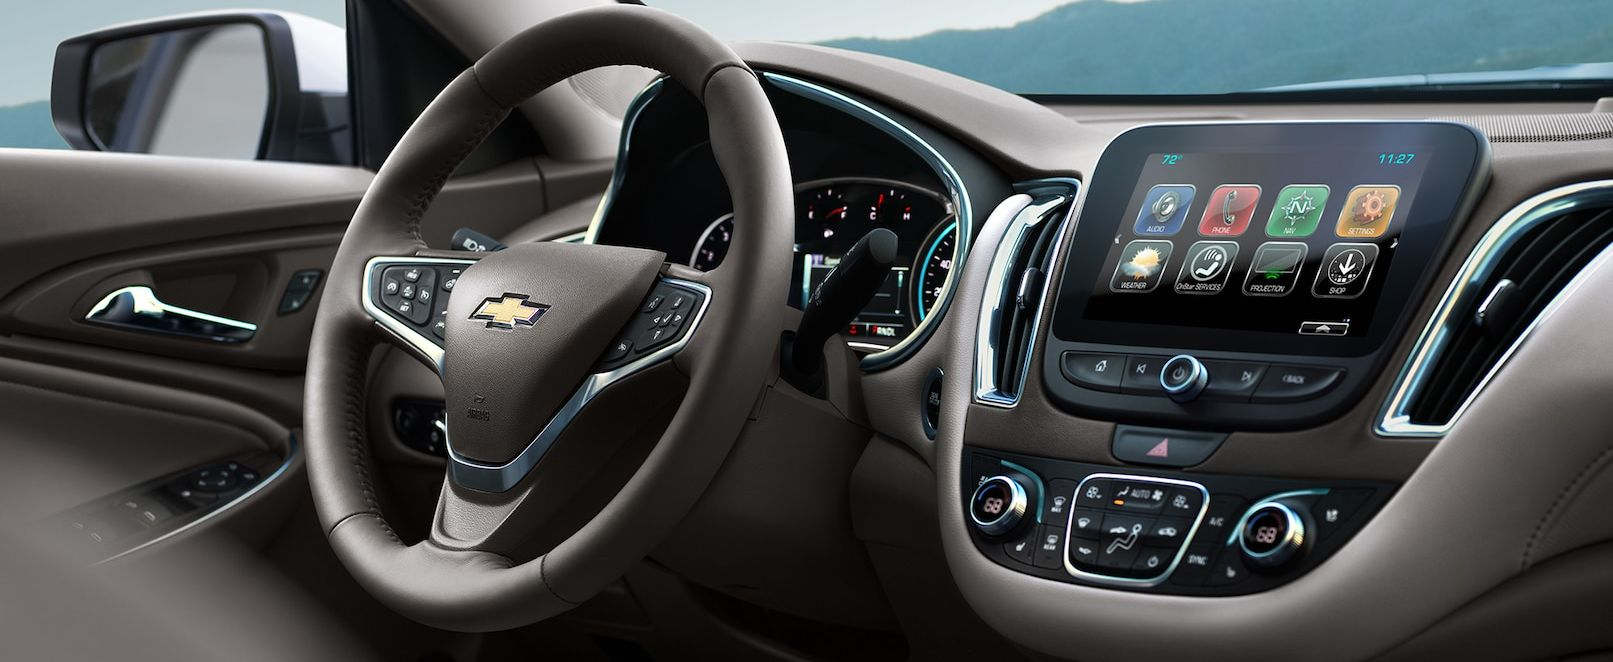 Interior of the 2018 Chevy Malibu